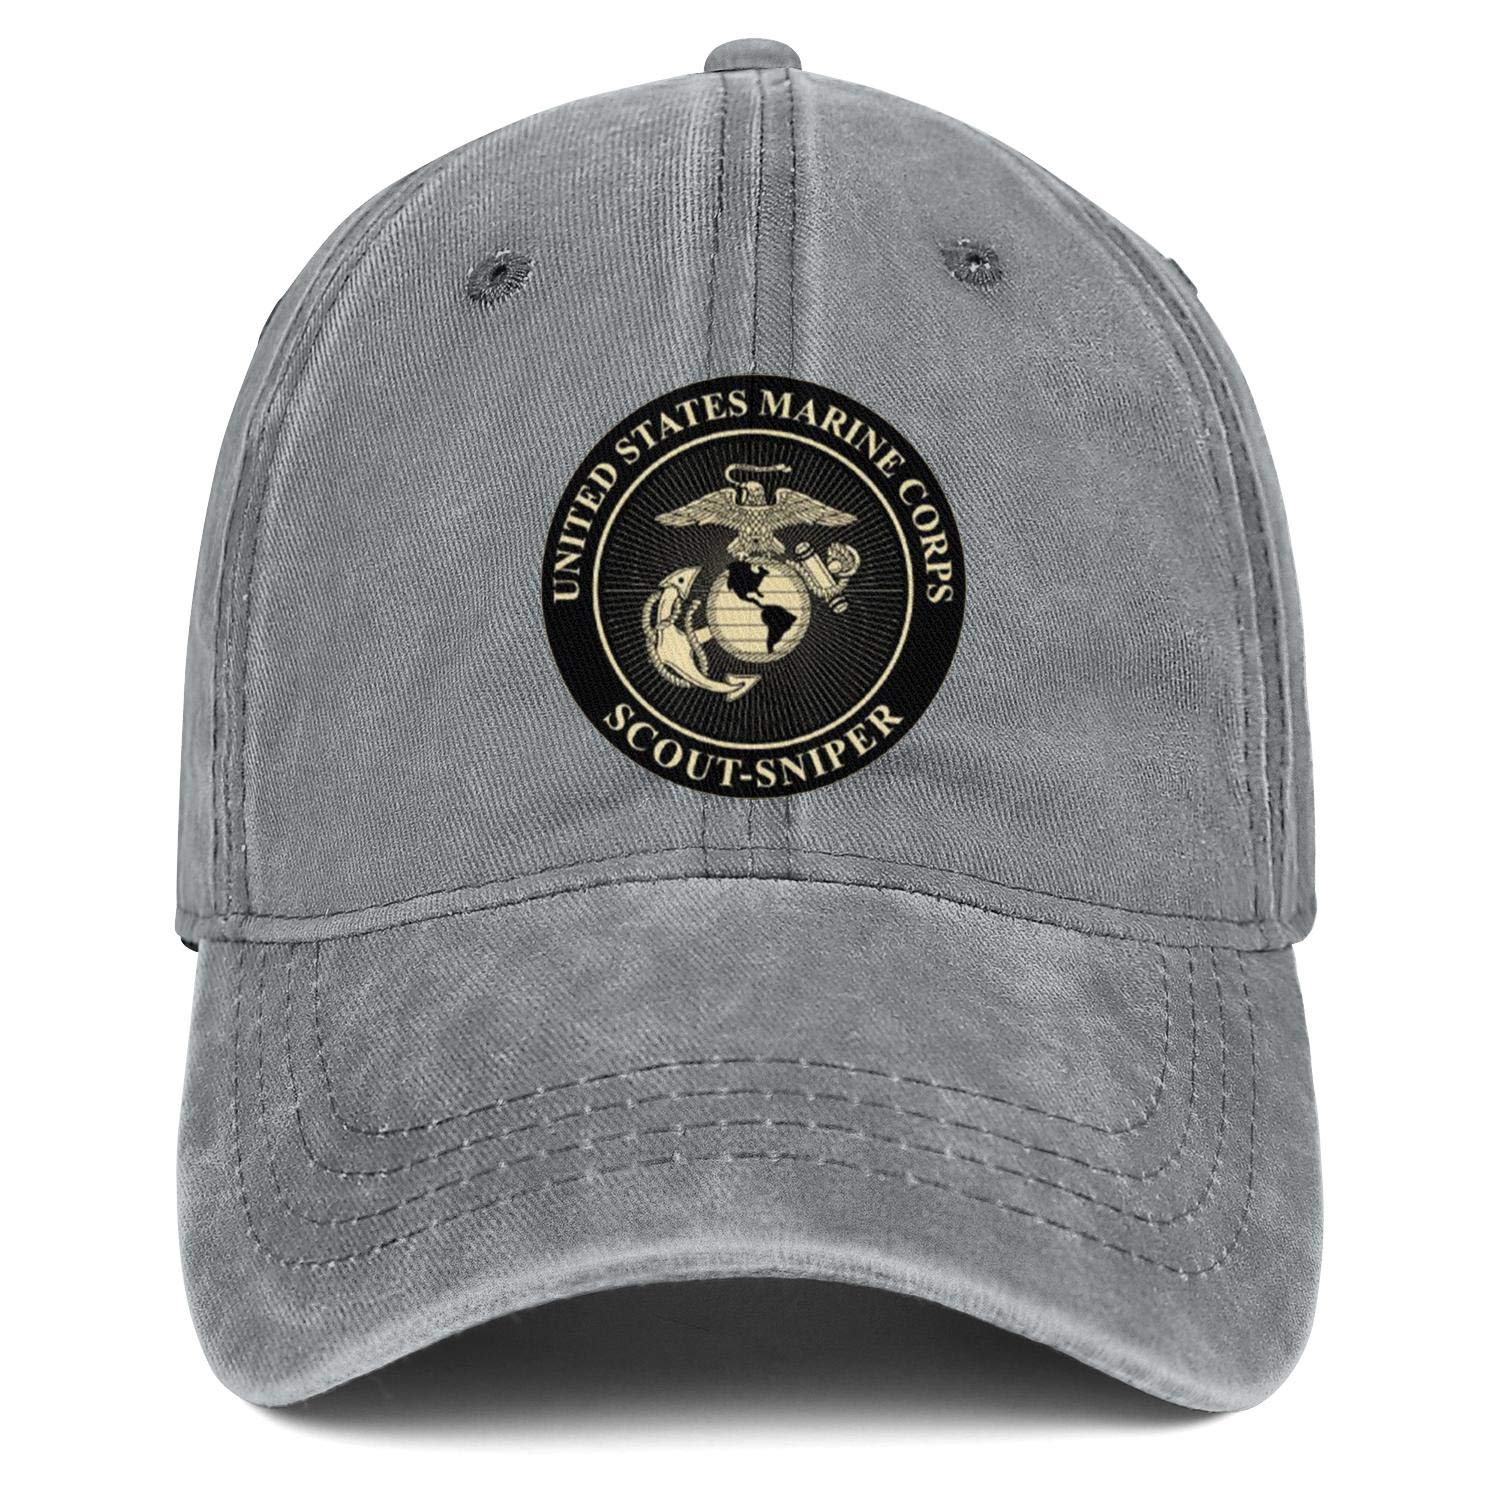 United States Marine Corps Scout Sniper Low Profile Washed Distressed Strapback Hat Designer Twill Jean Hats Mens